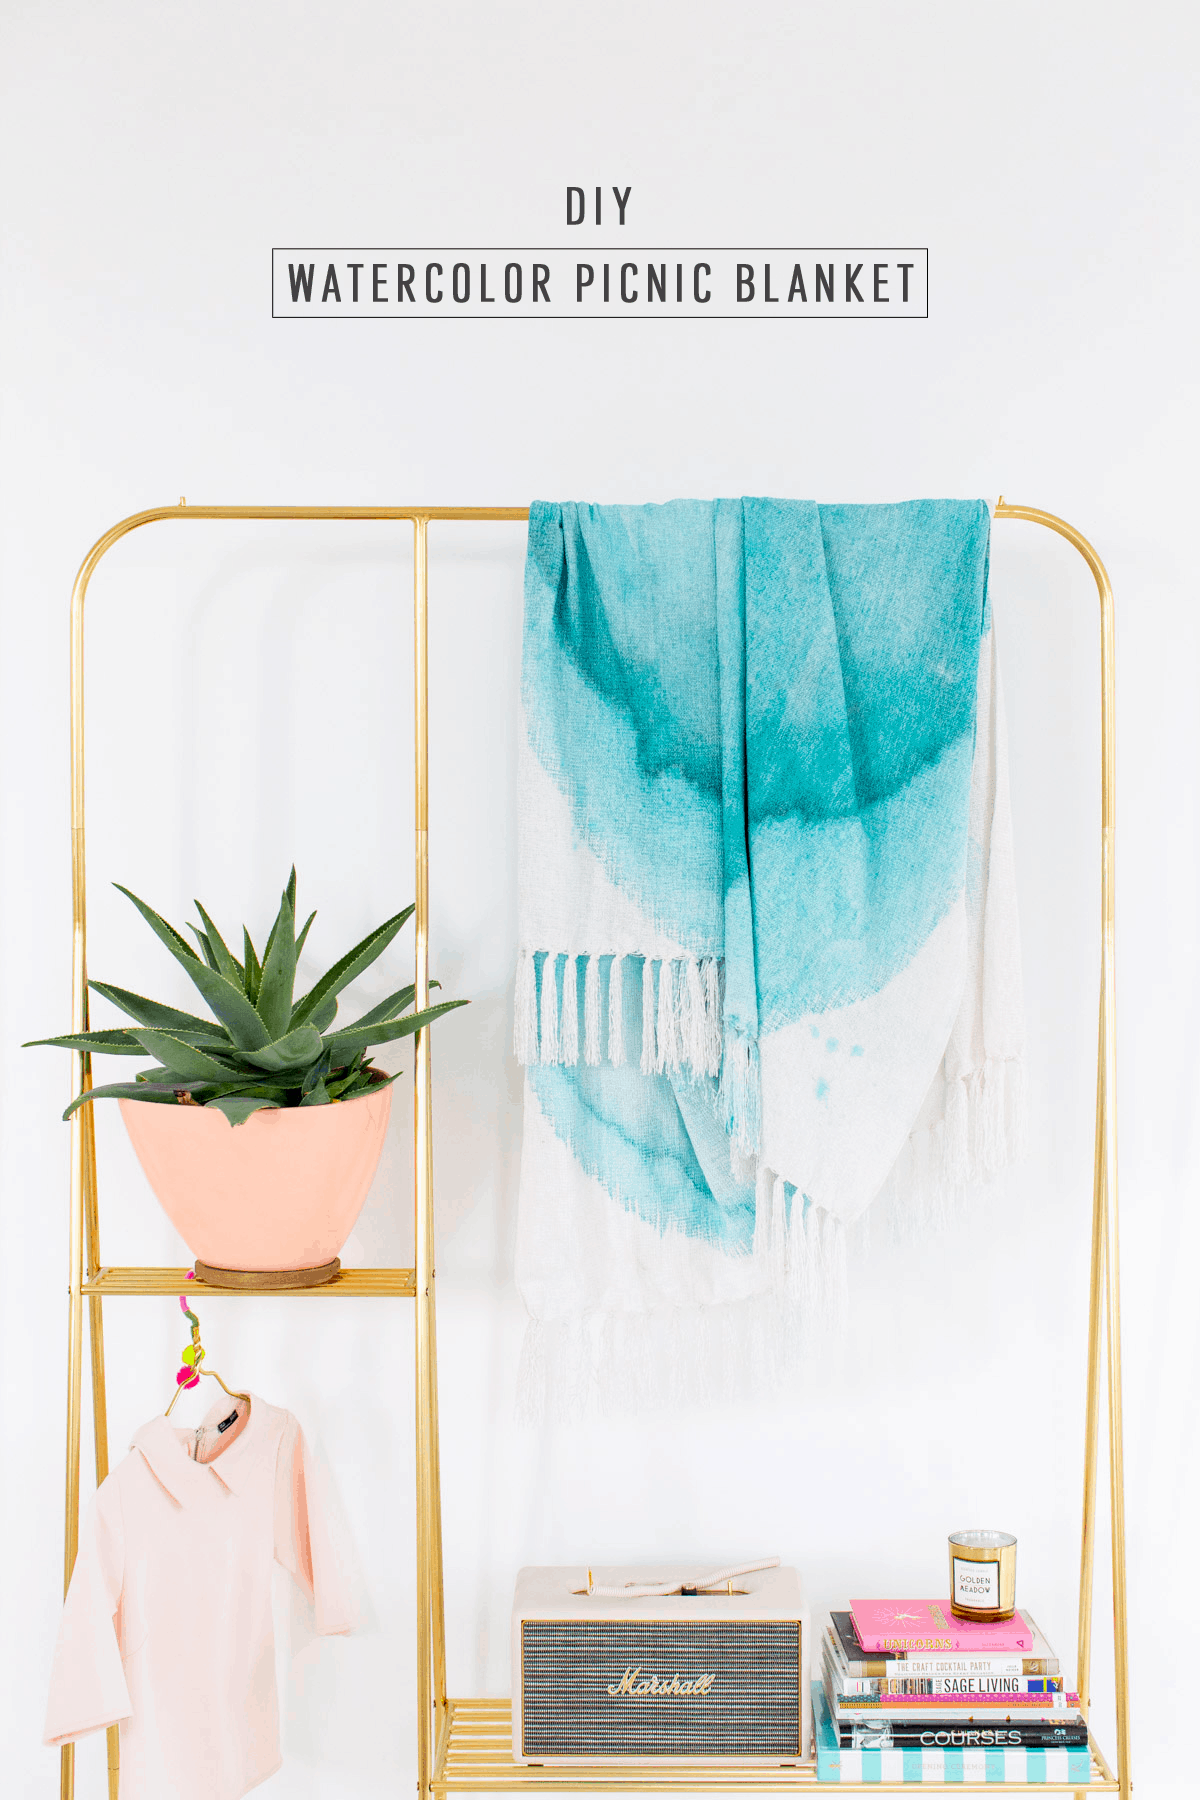 kendall-jackson-diy-watercolor-blanket-14